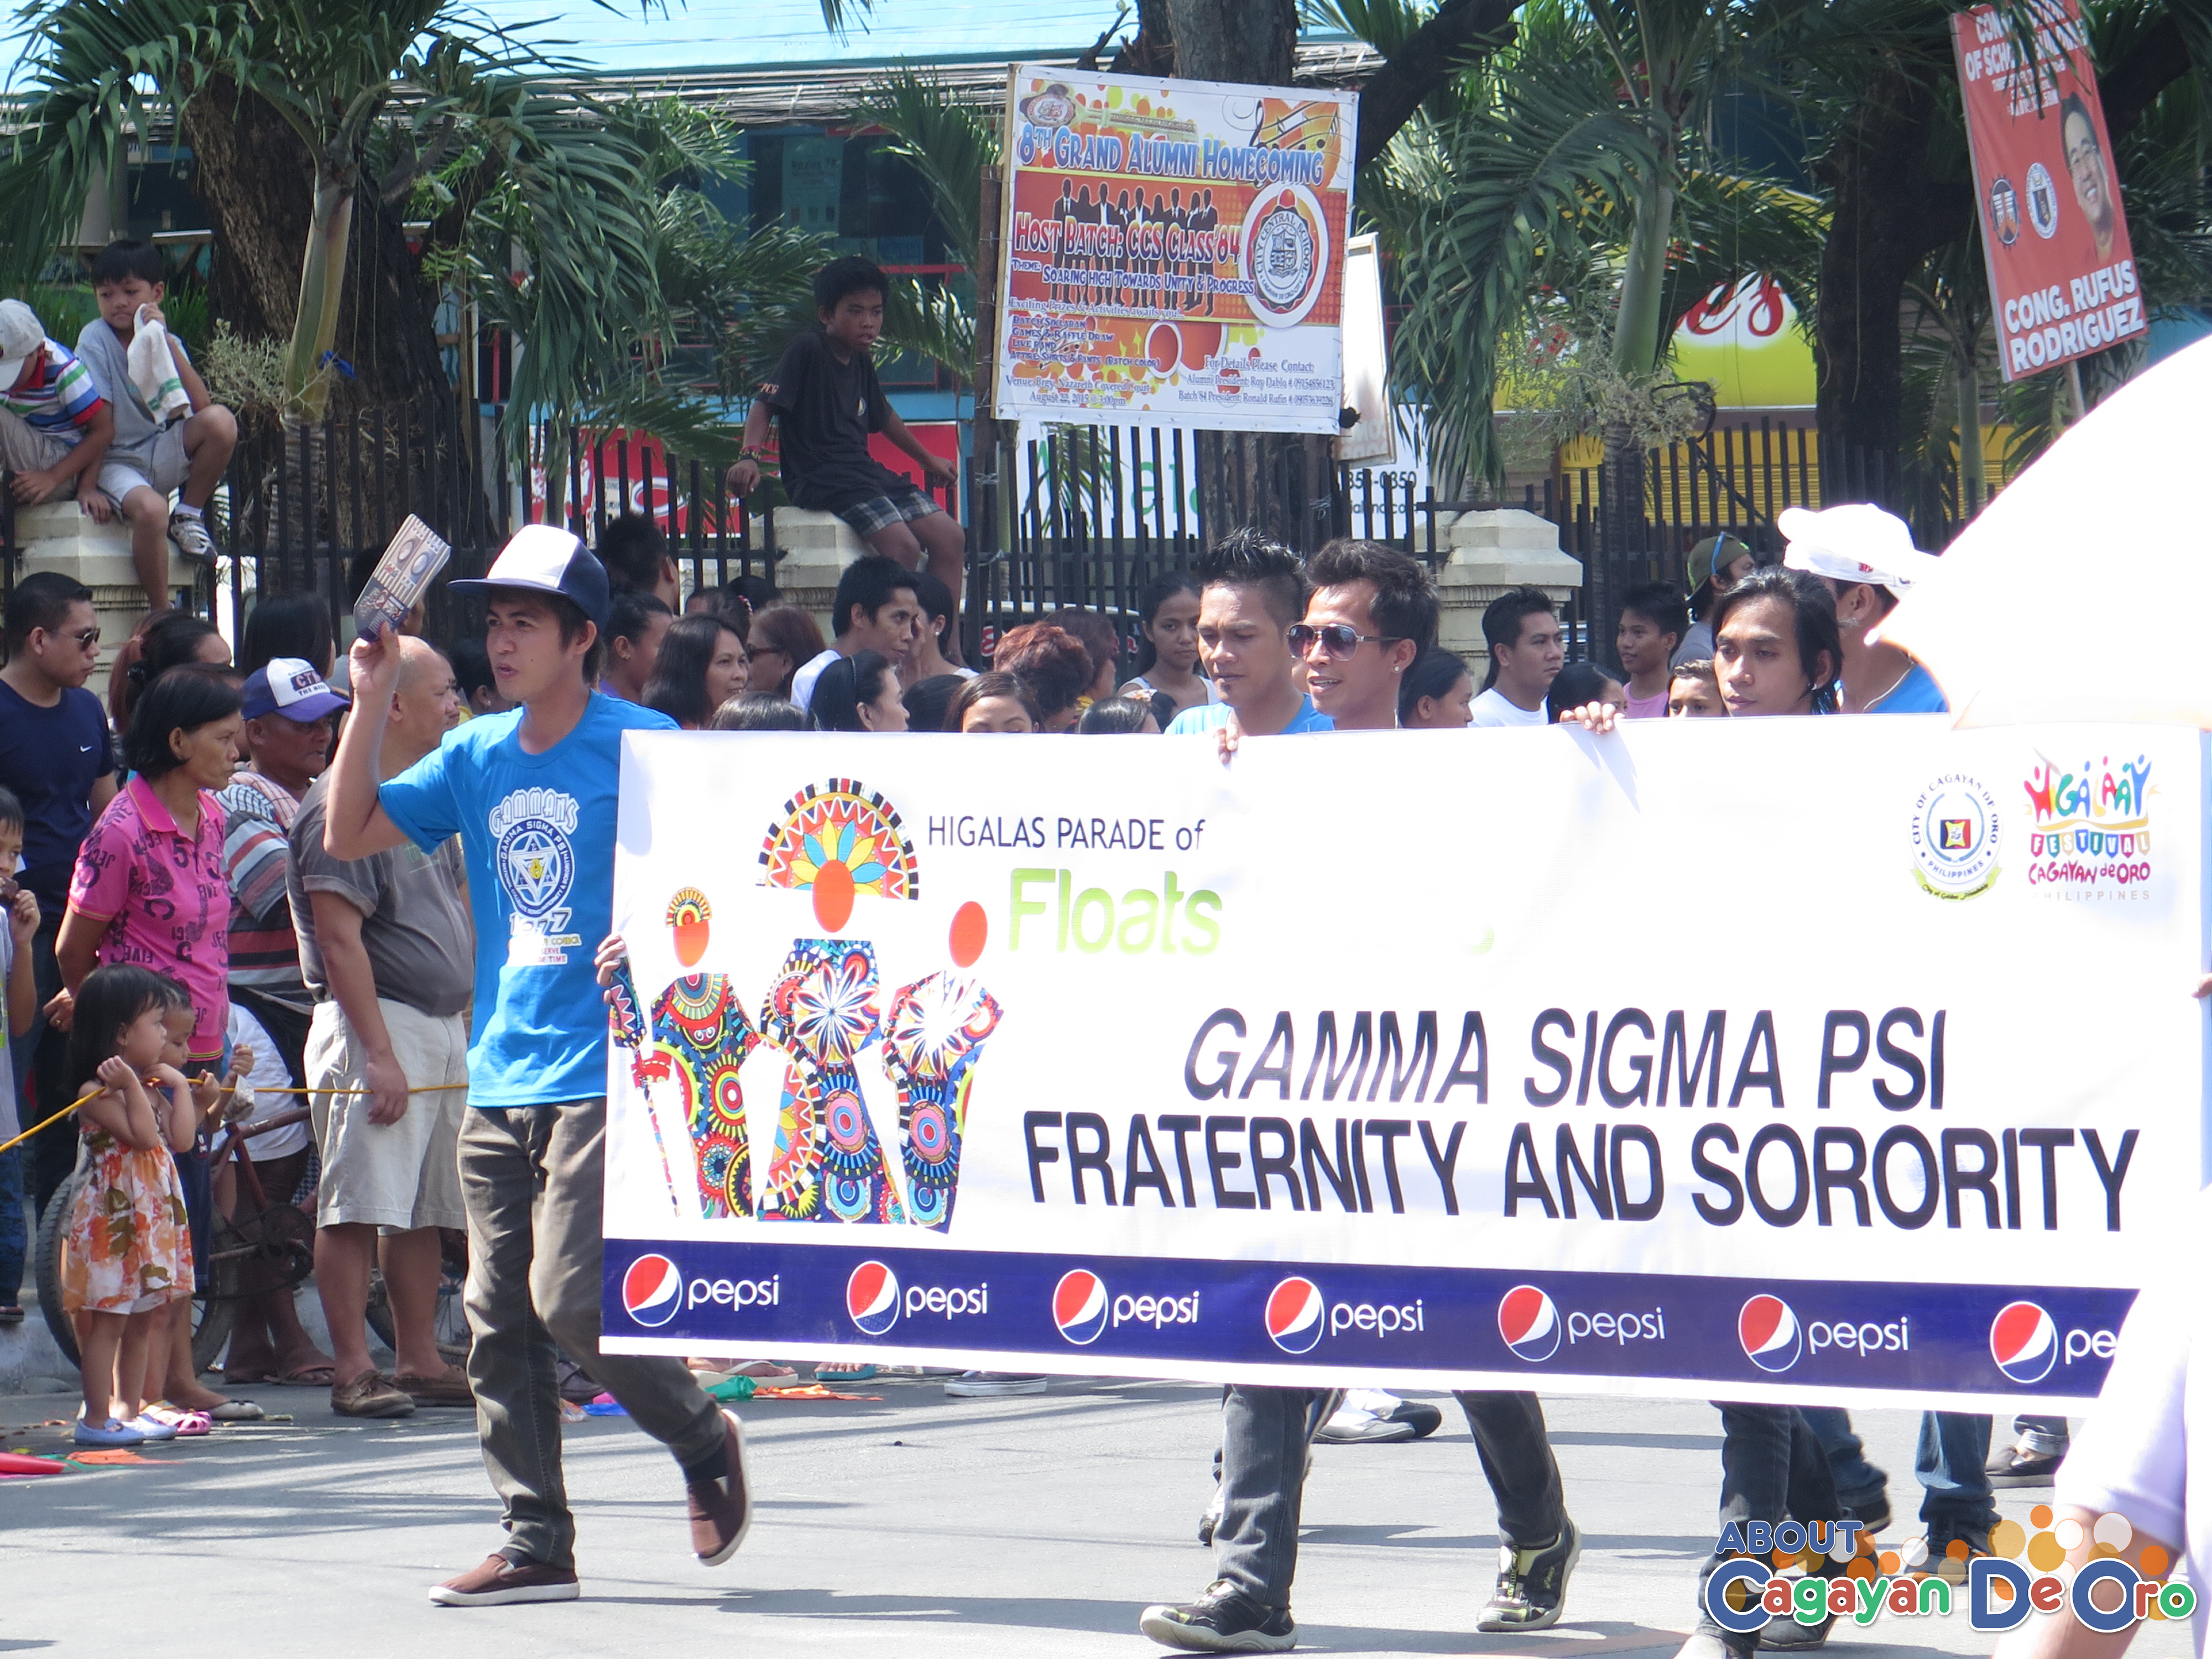 Gamma Sigma Psi Fraternity and Sorority at Cagayan de Oro The Higalas Parade of Floats and Icons 2015